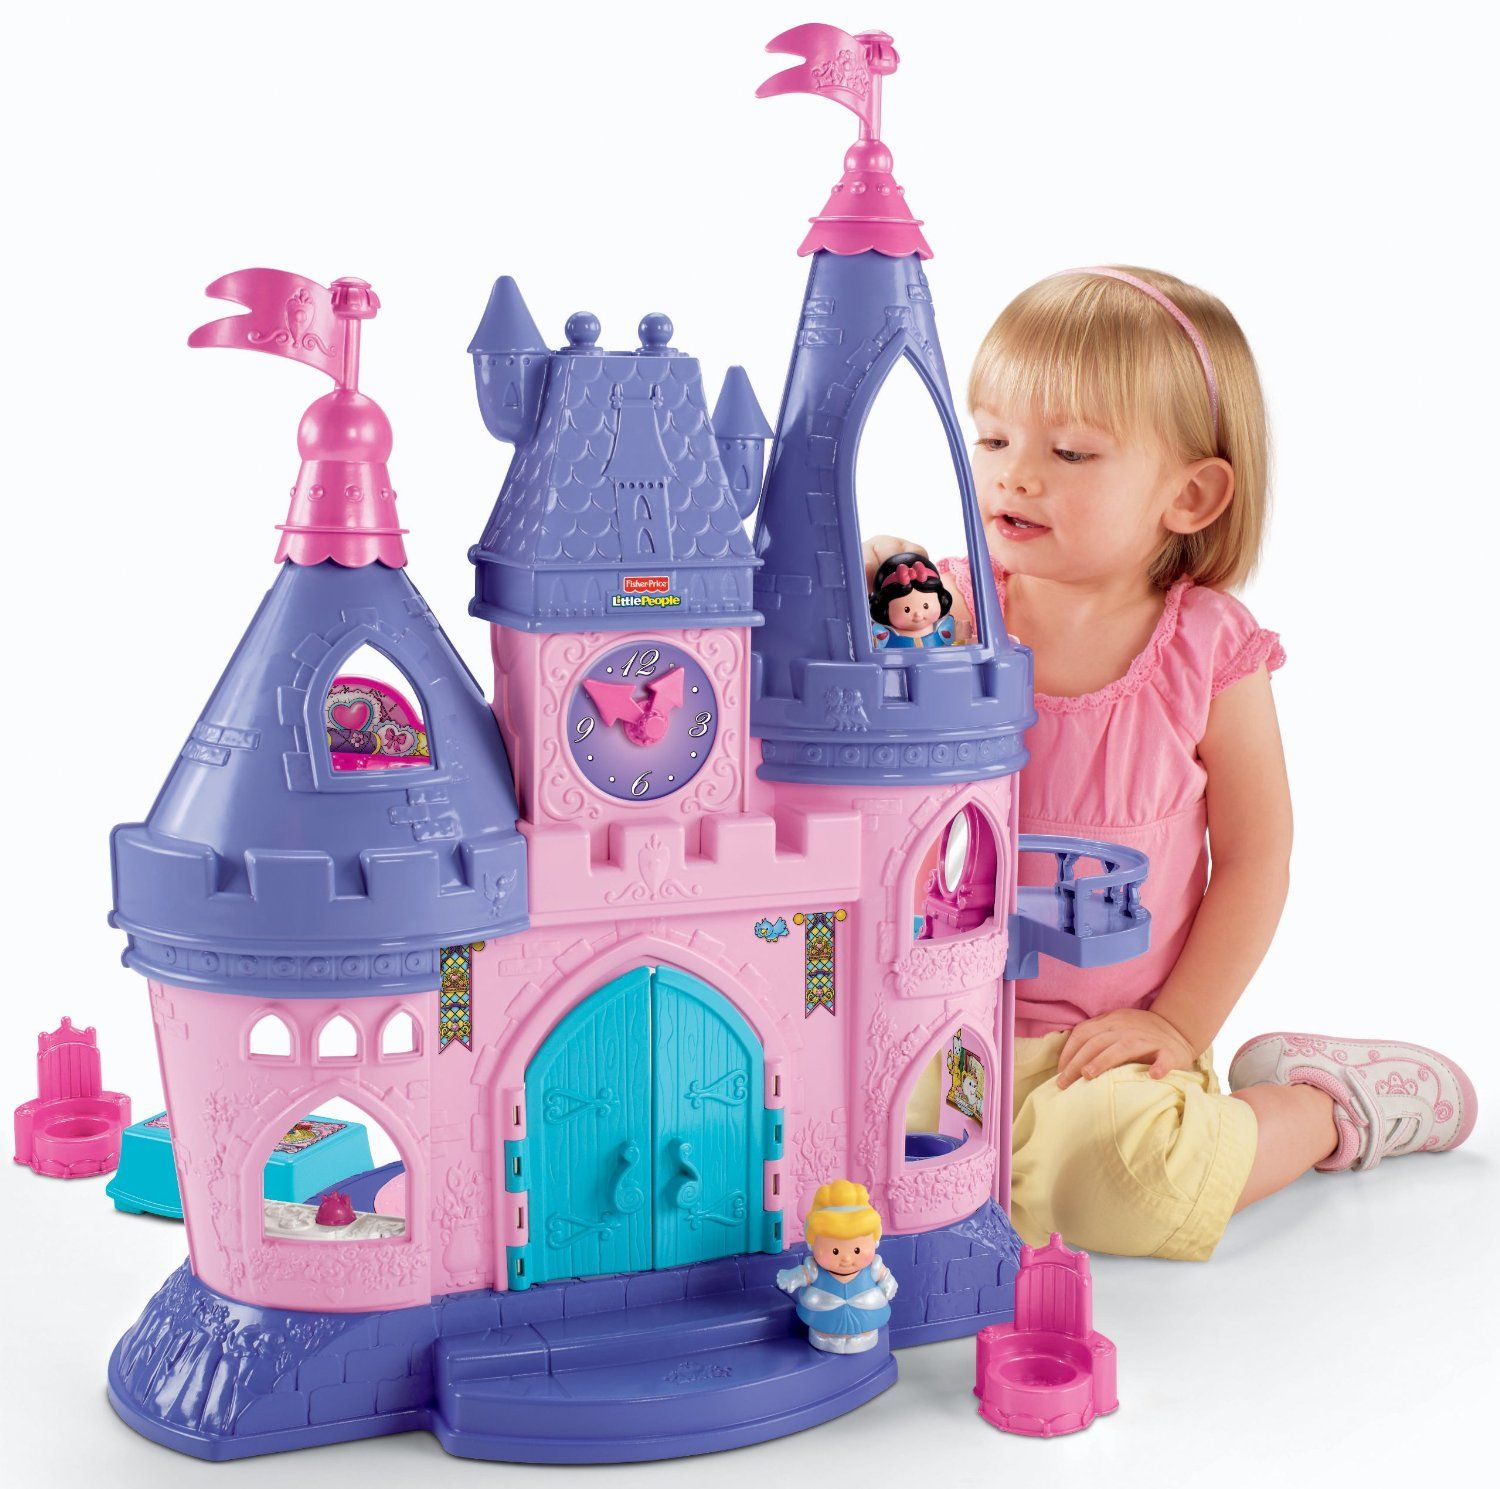 Best toys for A 2 Year Old Little Girl Pics